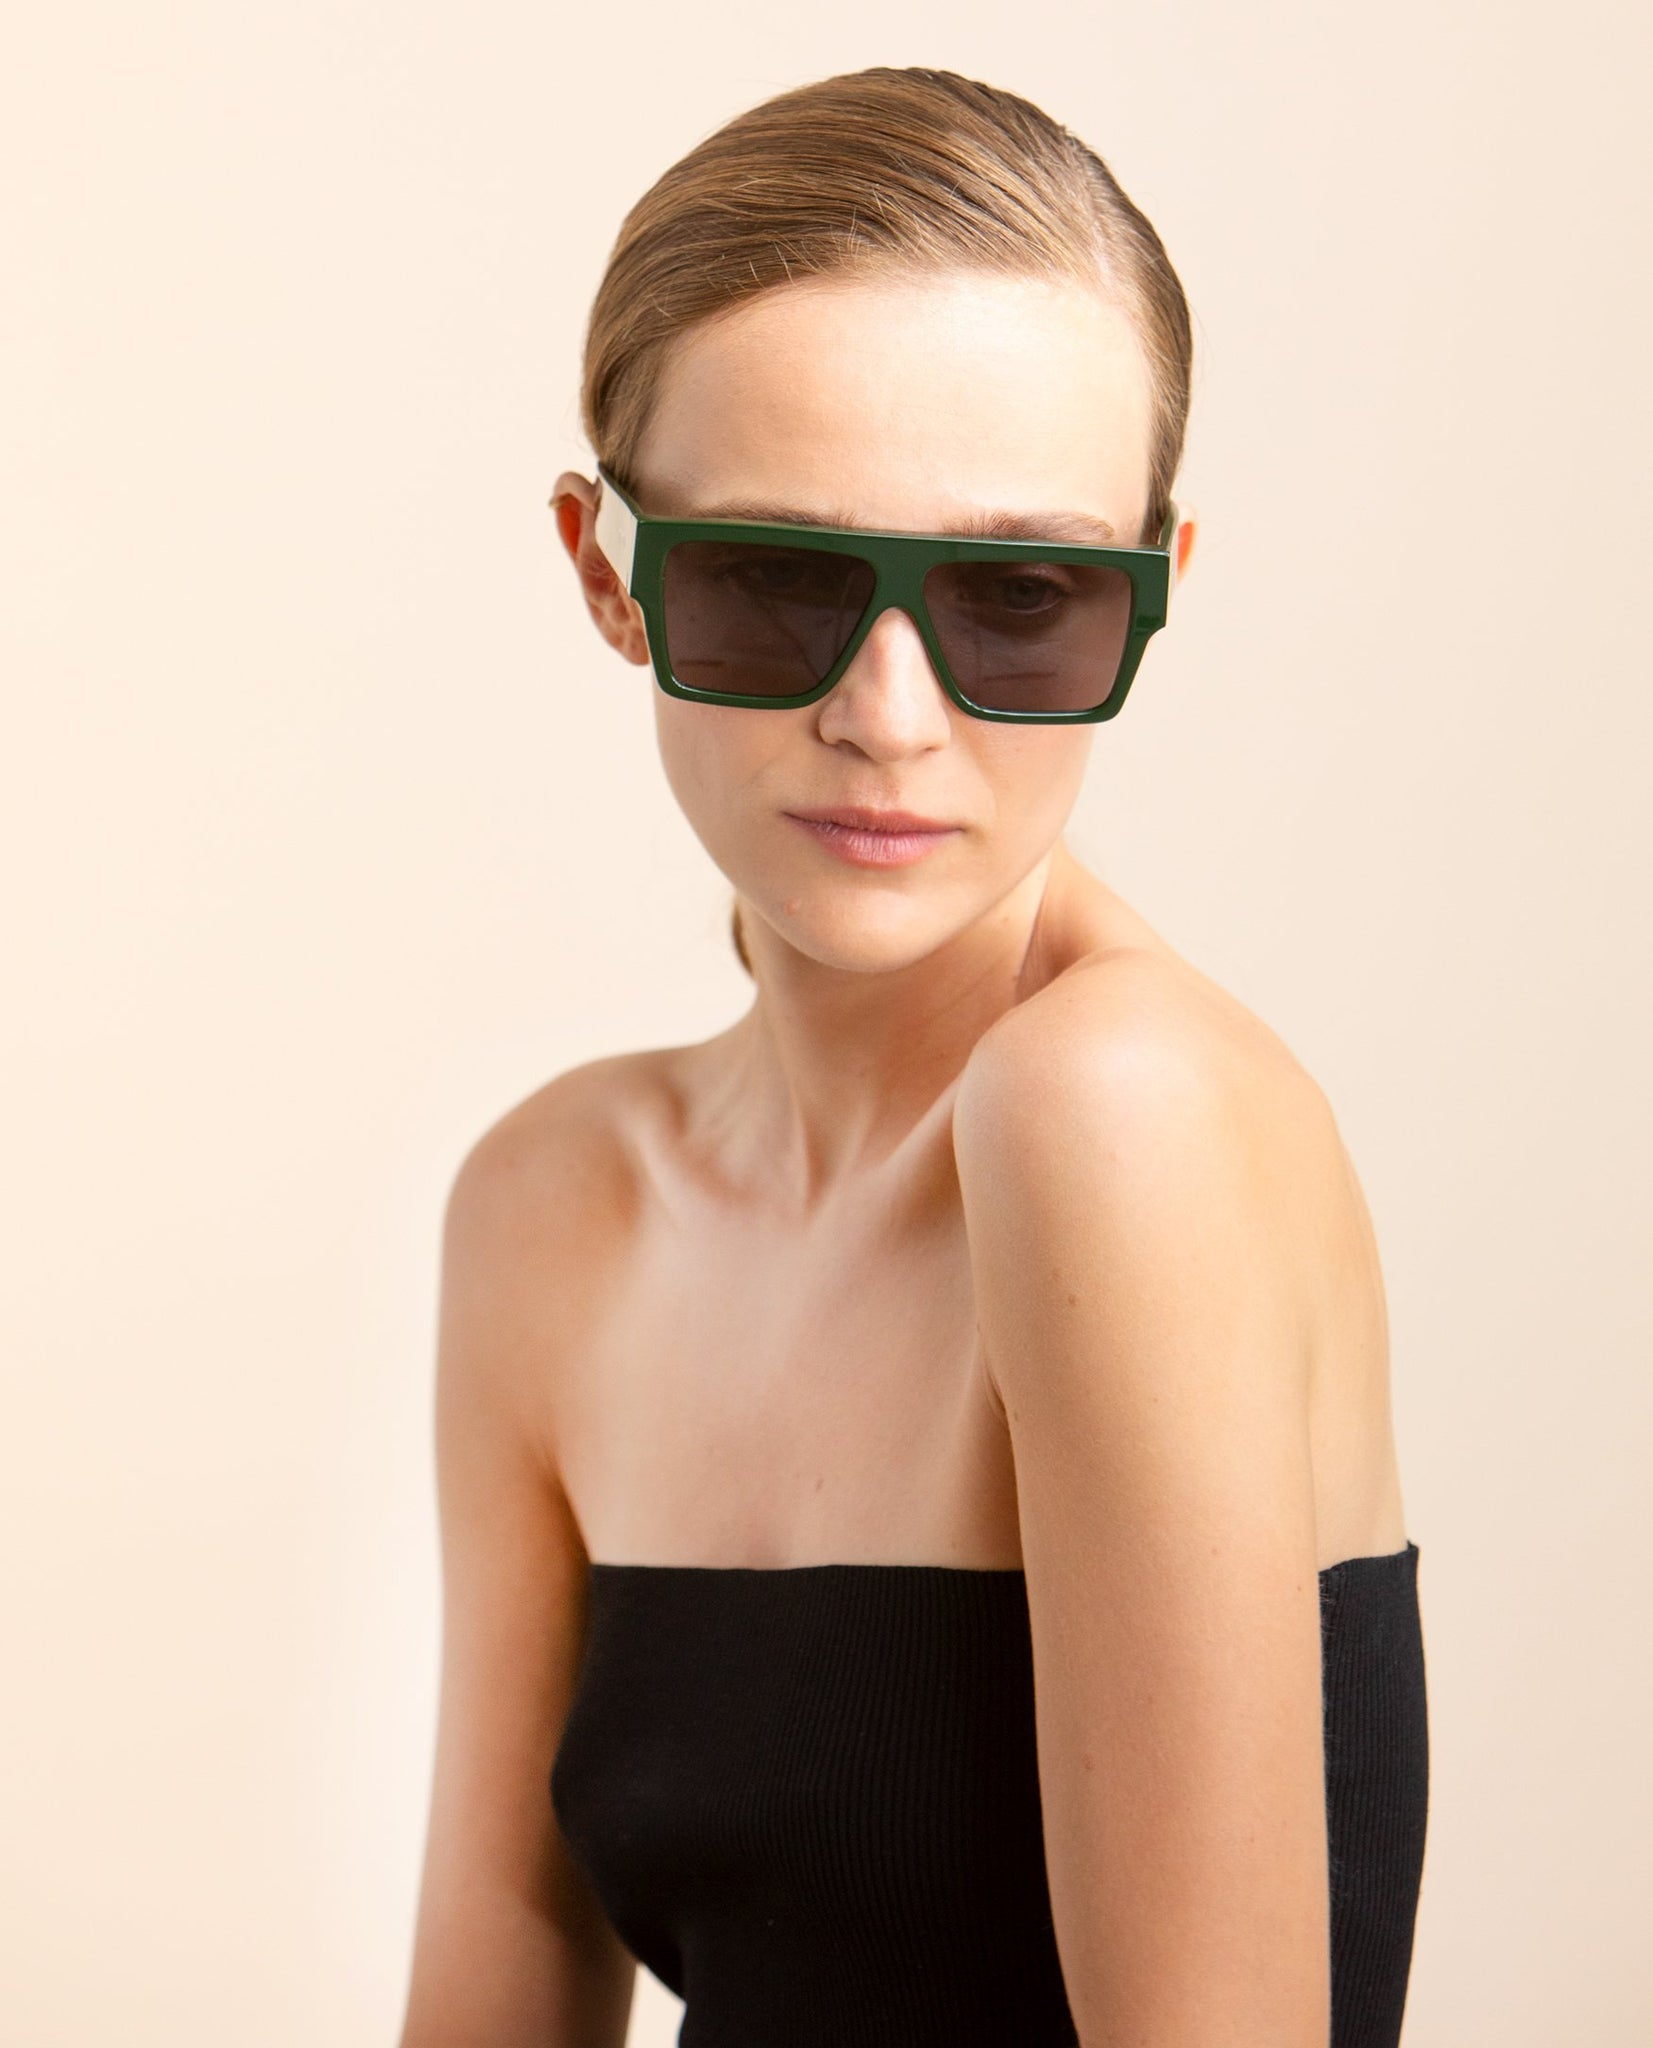 TOL EYEWEAR LAZER SUNGLASSES IN LODGE GREEN - BEYOND STUDIOS